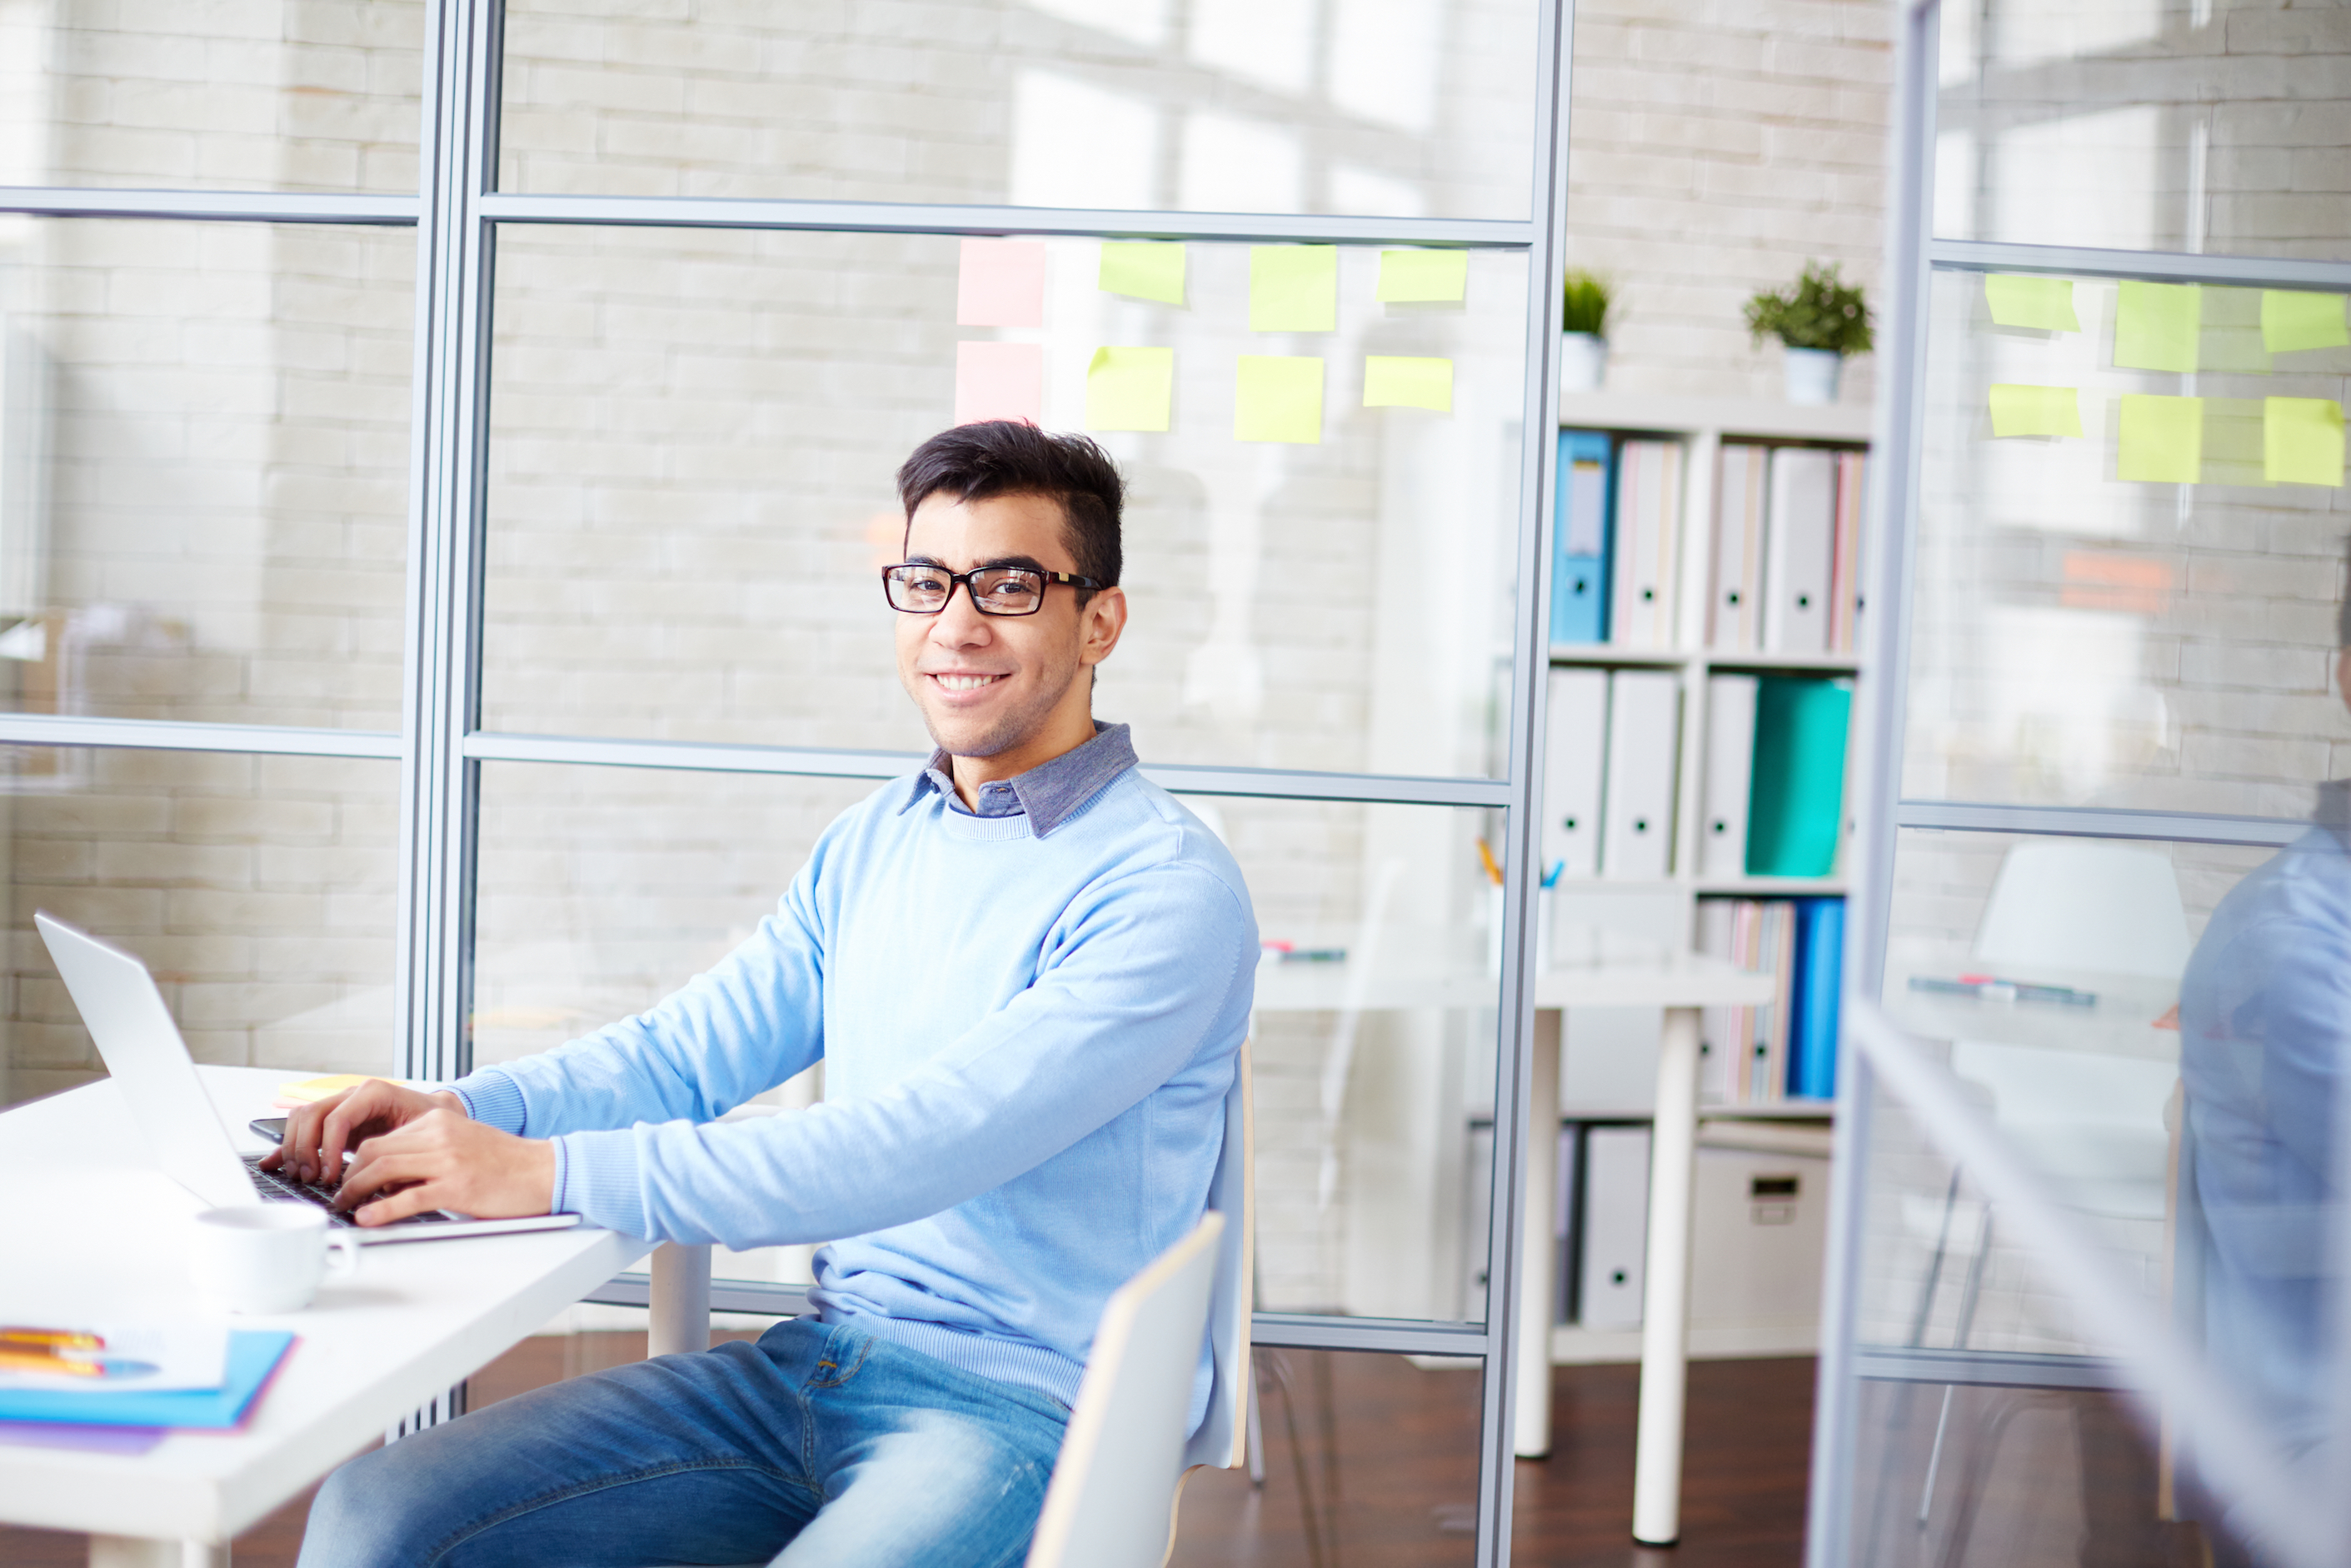 stock image of person at computer, smiling